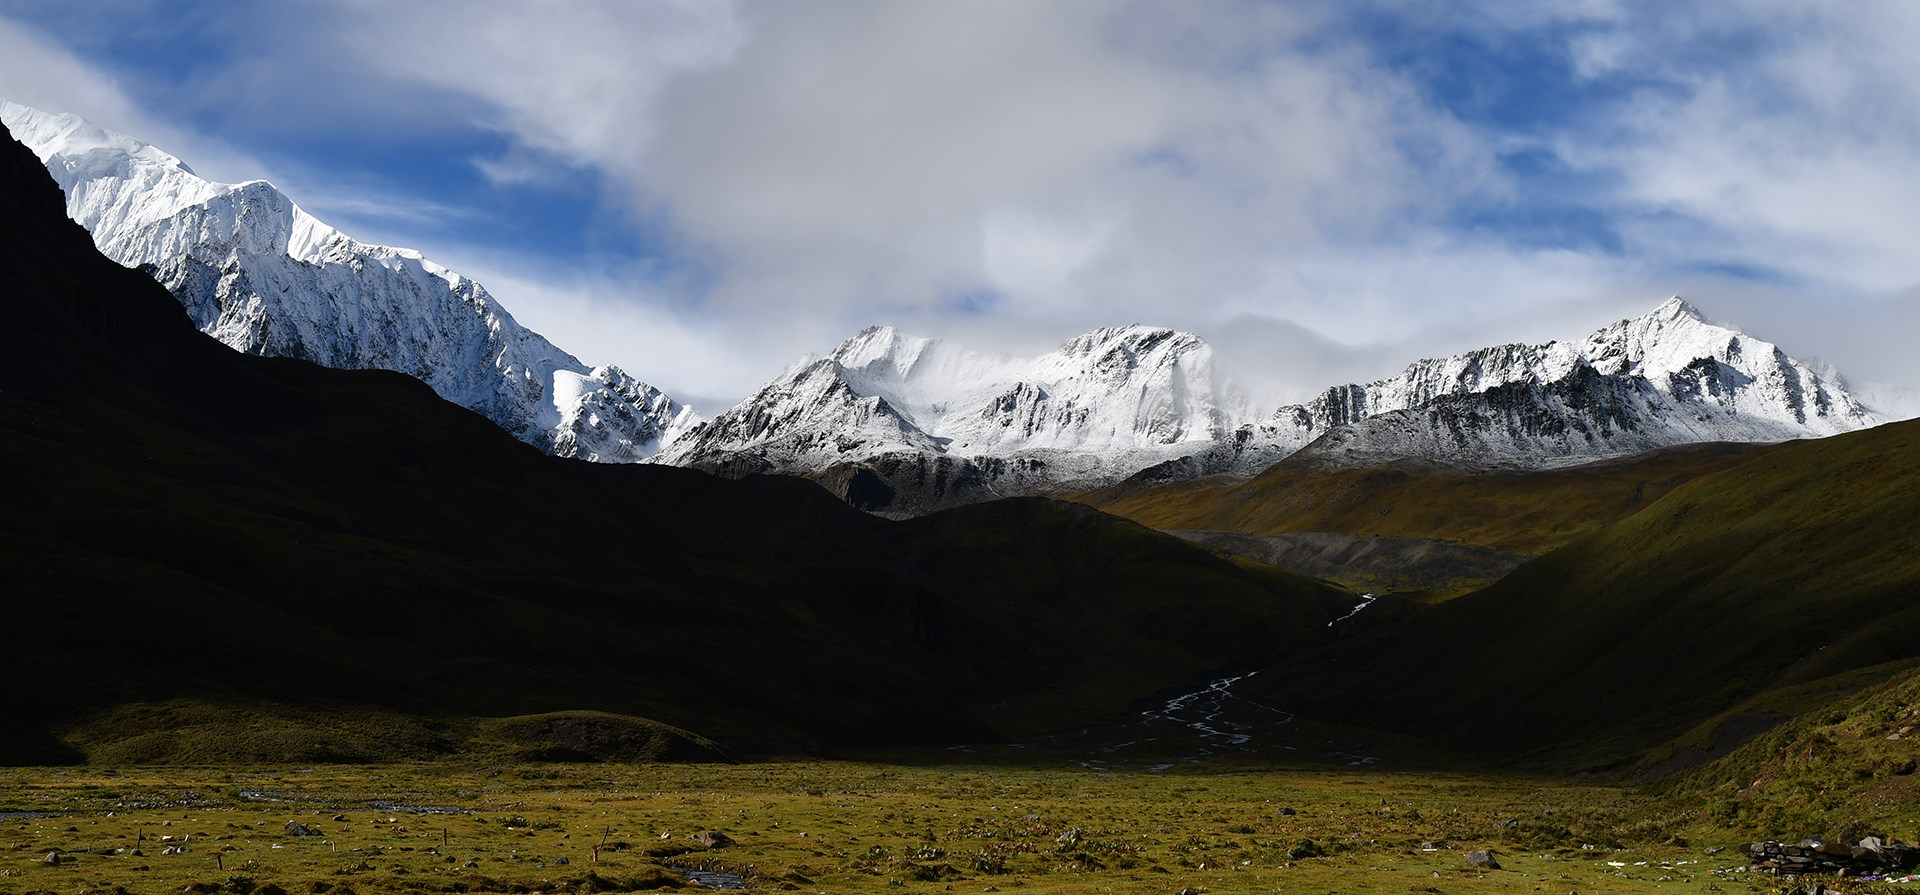 Trekkingreise am Gongga Berg in West-Sichuan